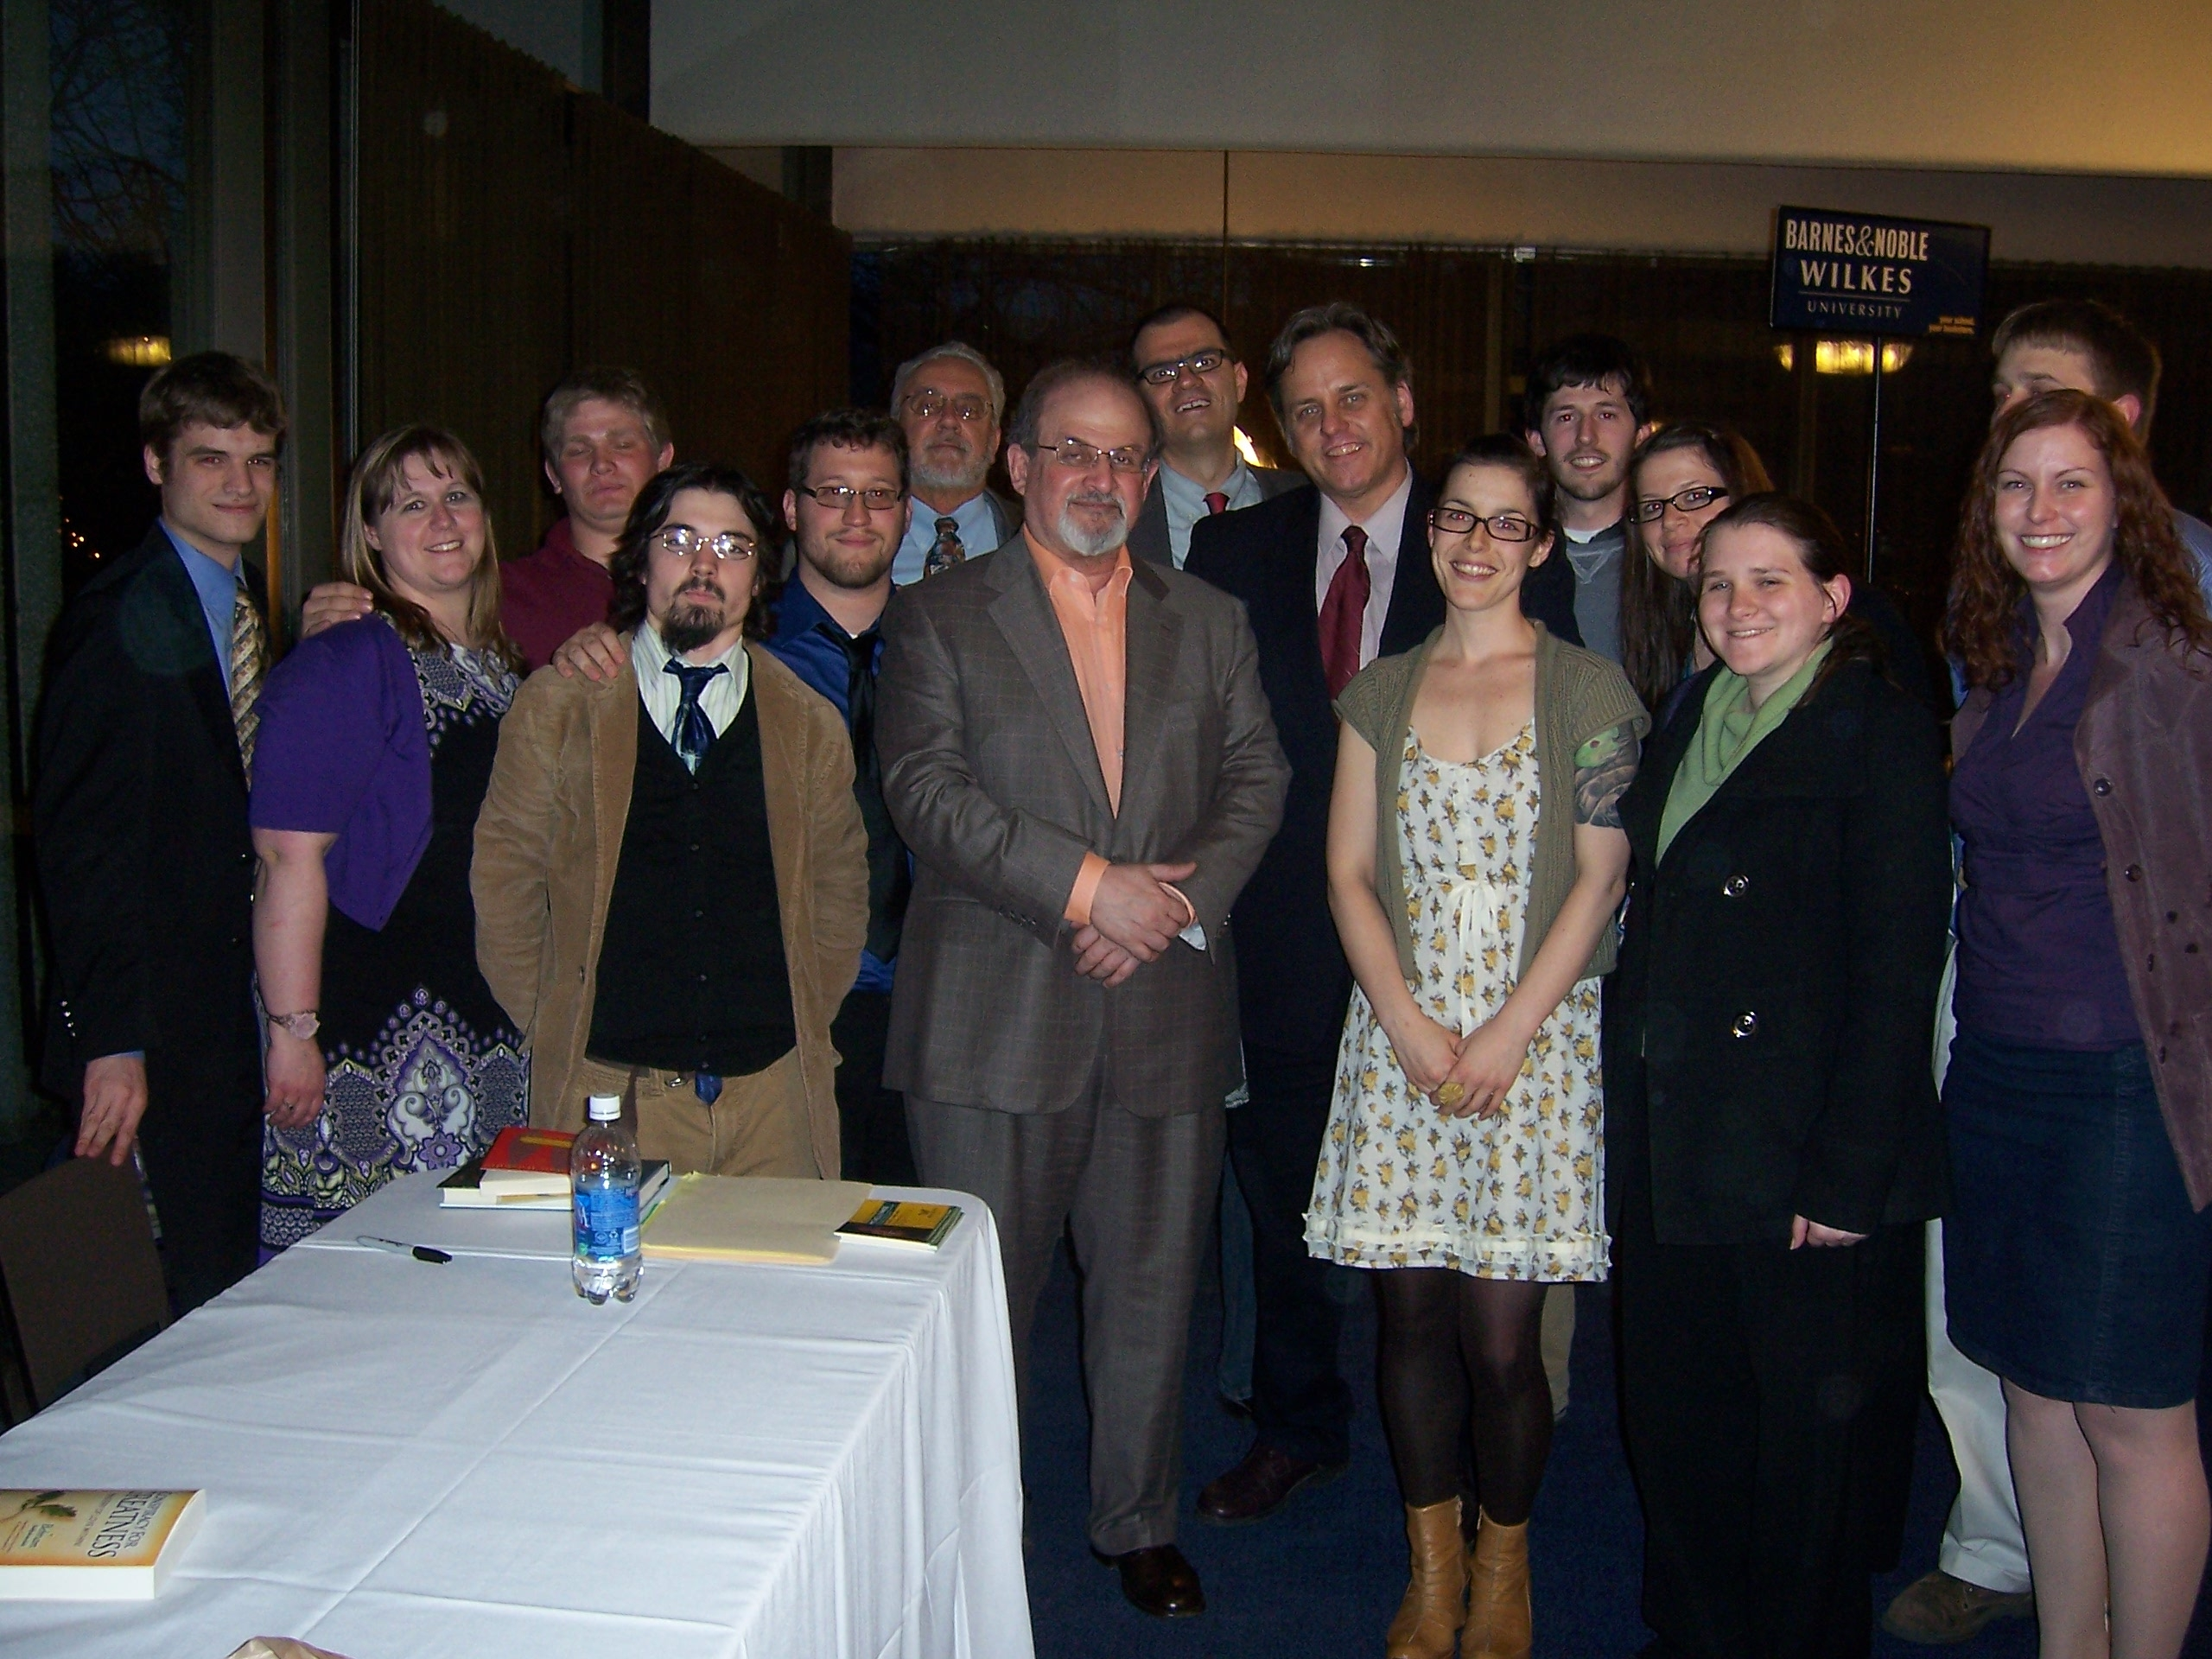 Rushdie photo